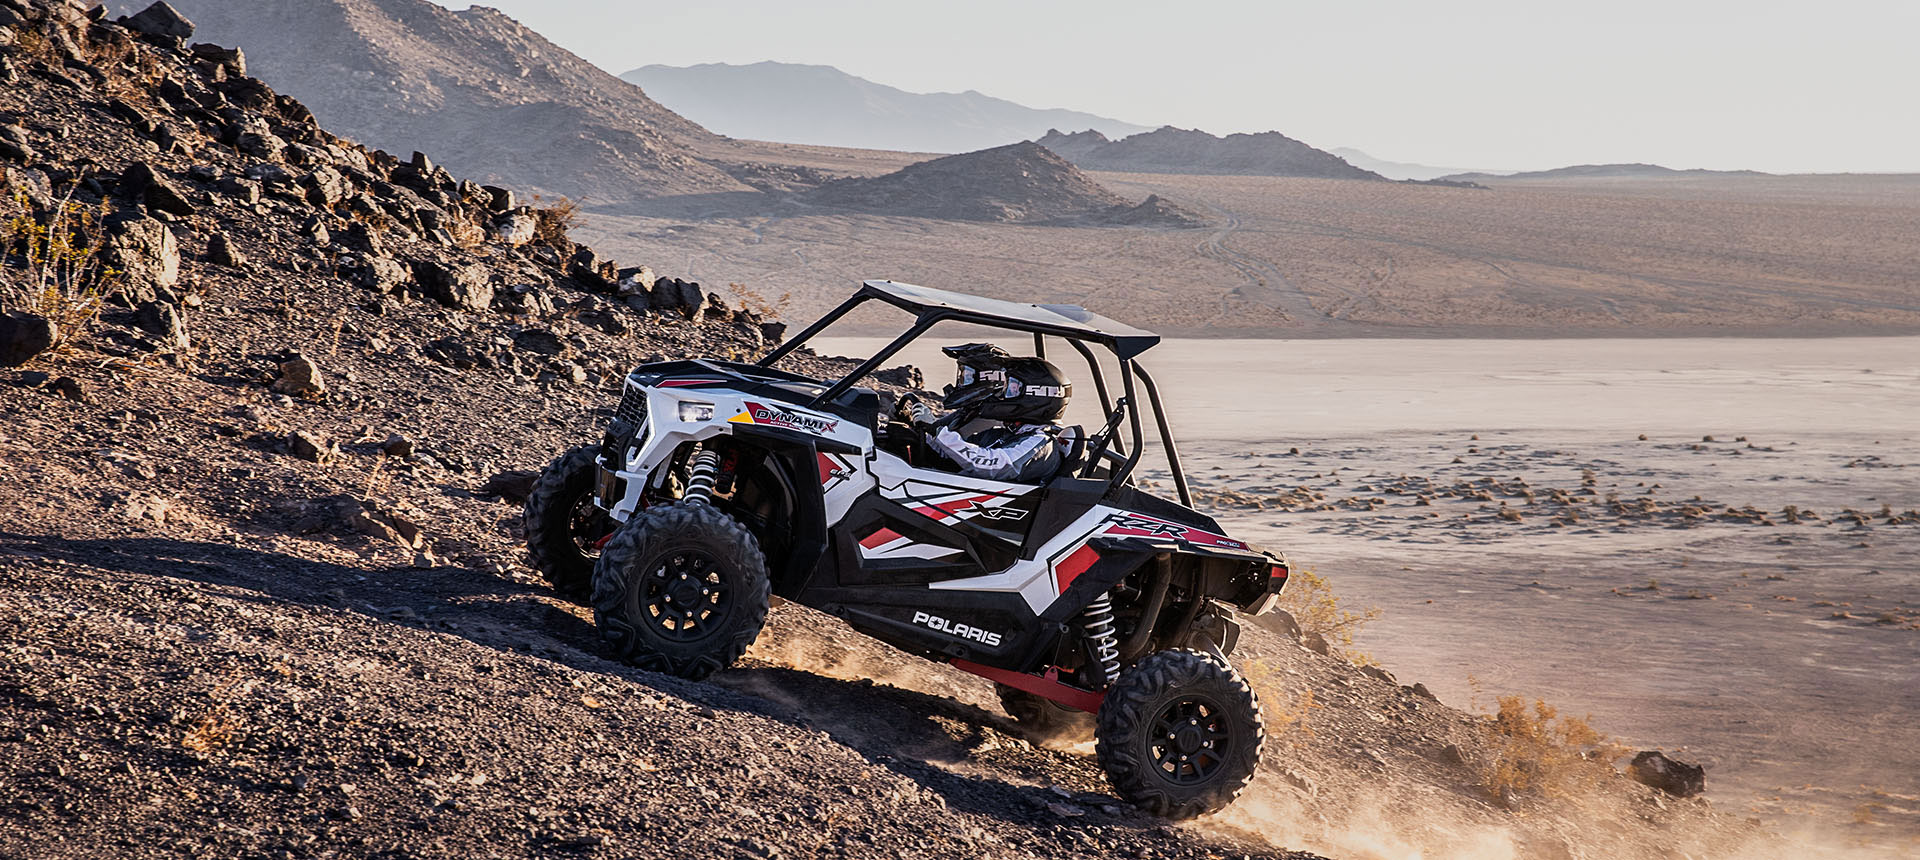 2019 Polaris RZR XP 1000 in Rapid City, South Dakota - Photo 5